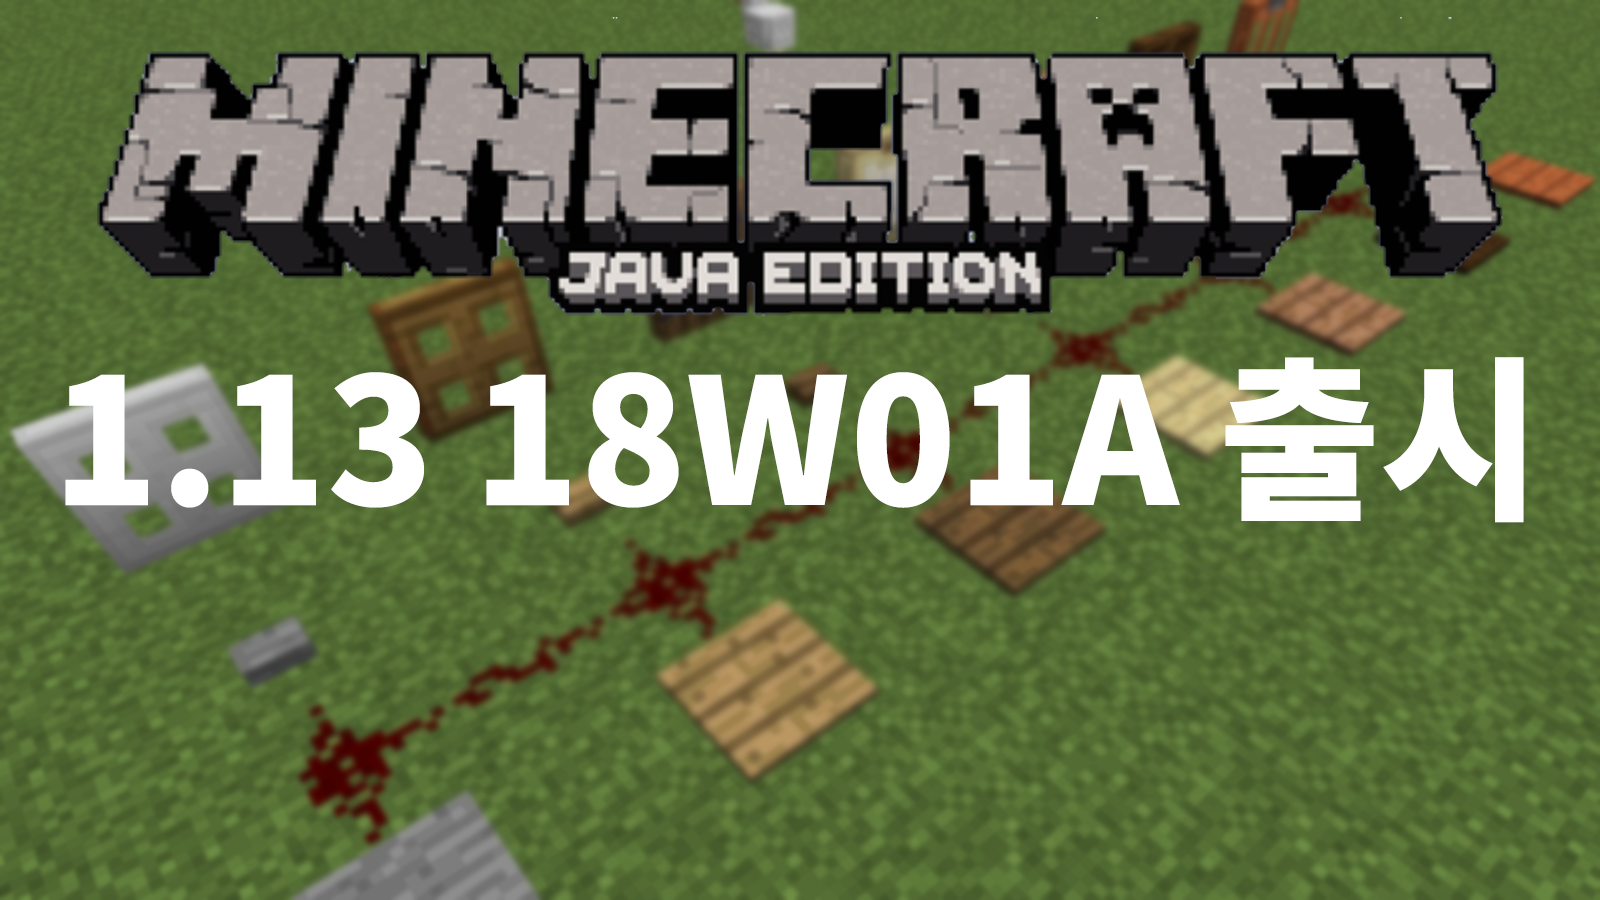 18W01A.png